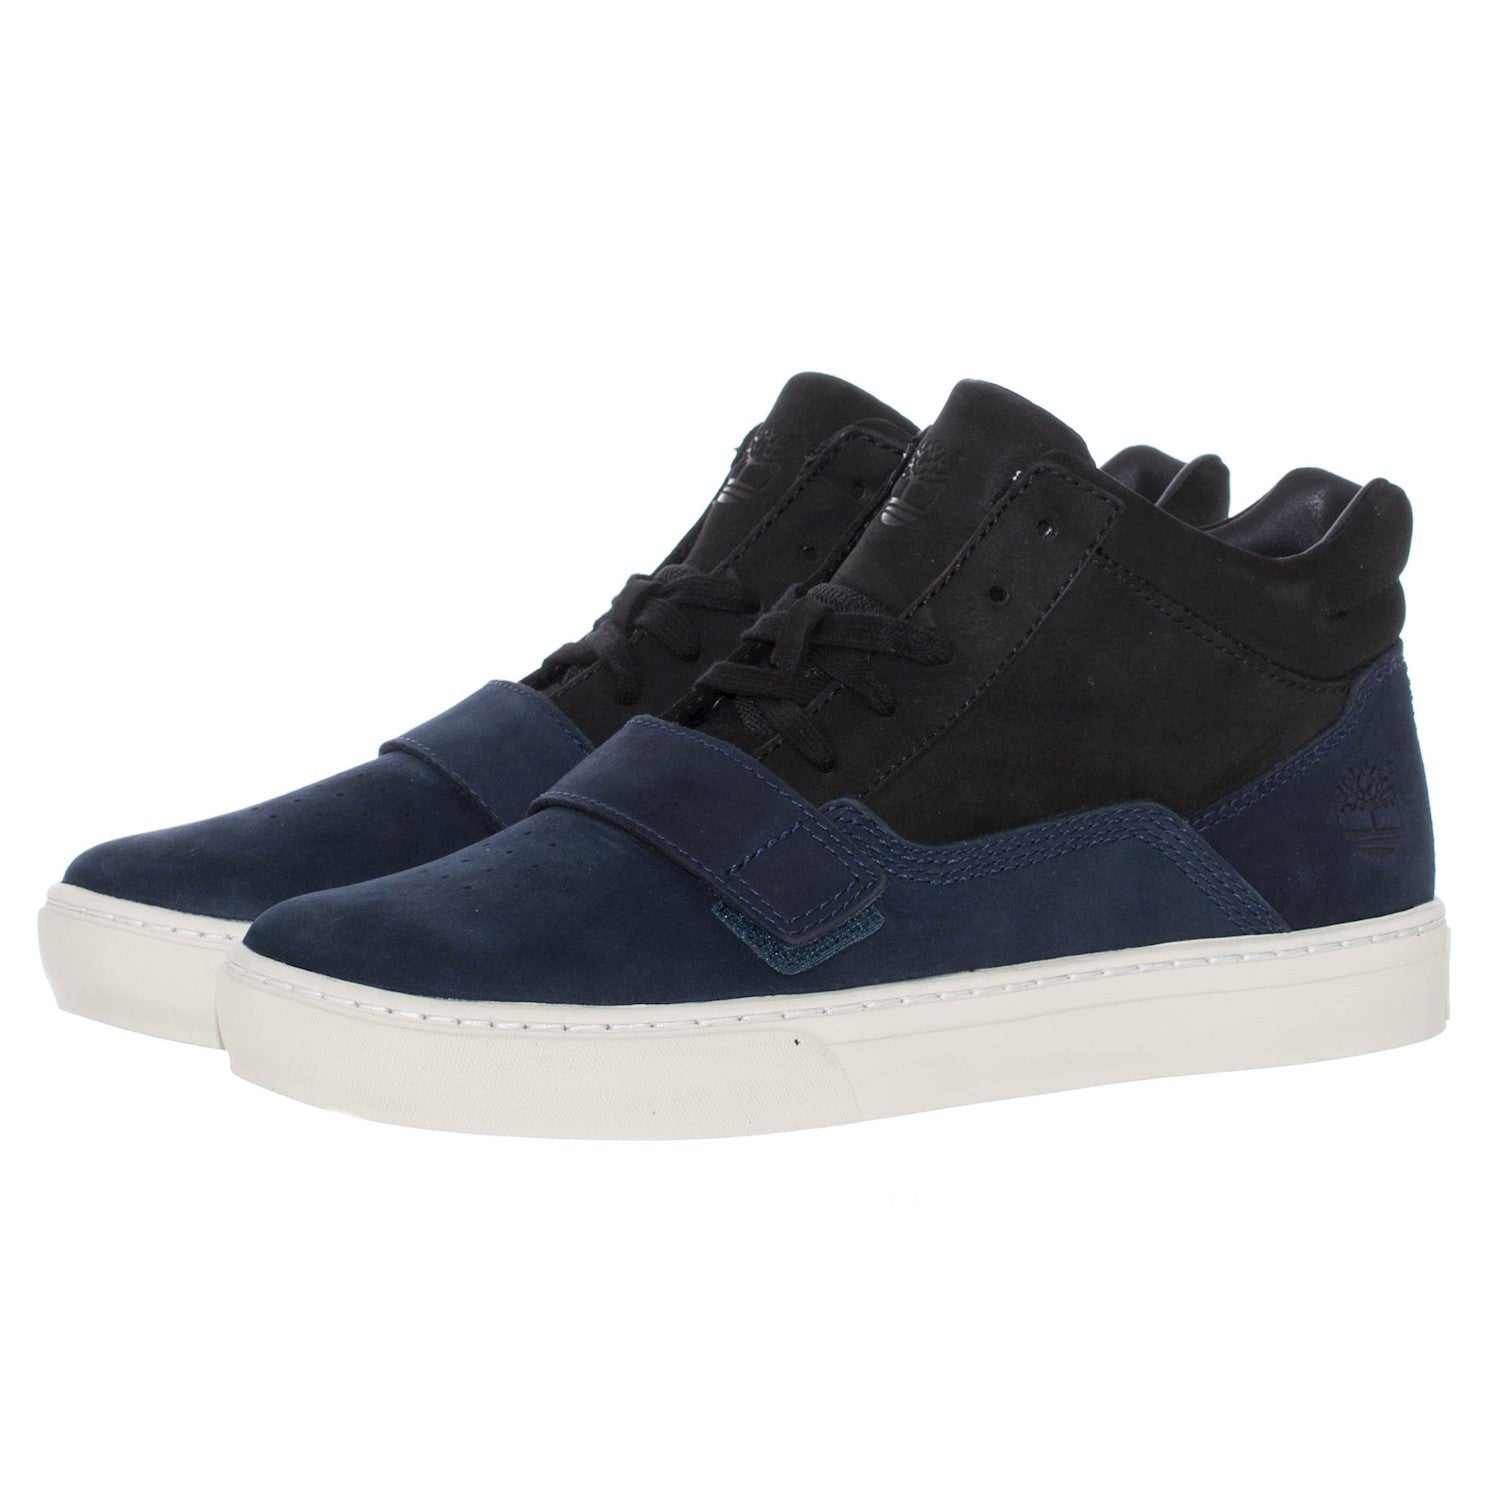 designer fashion in stock low price Timberland Mens ADV 2.0 Cupsole Black Blue Oily Leather Sneaker Shoes